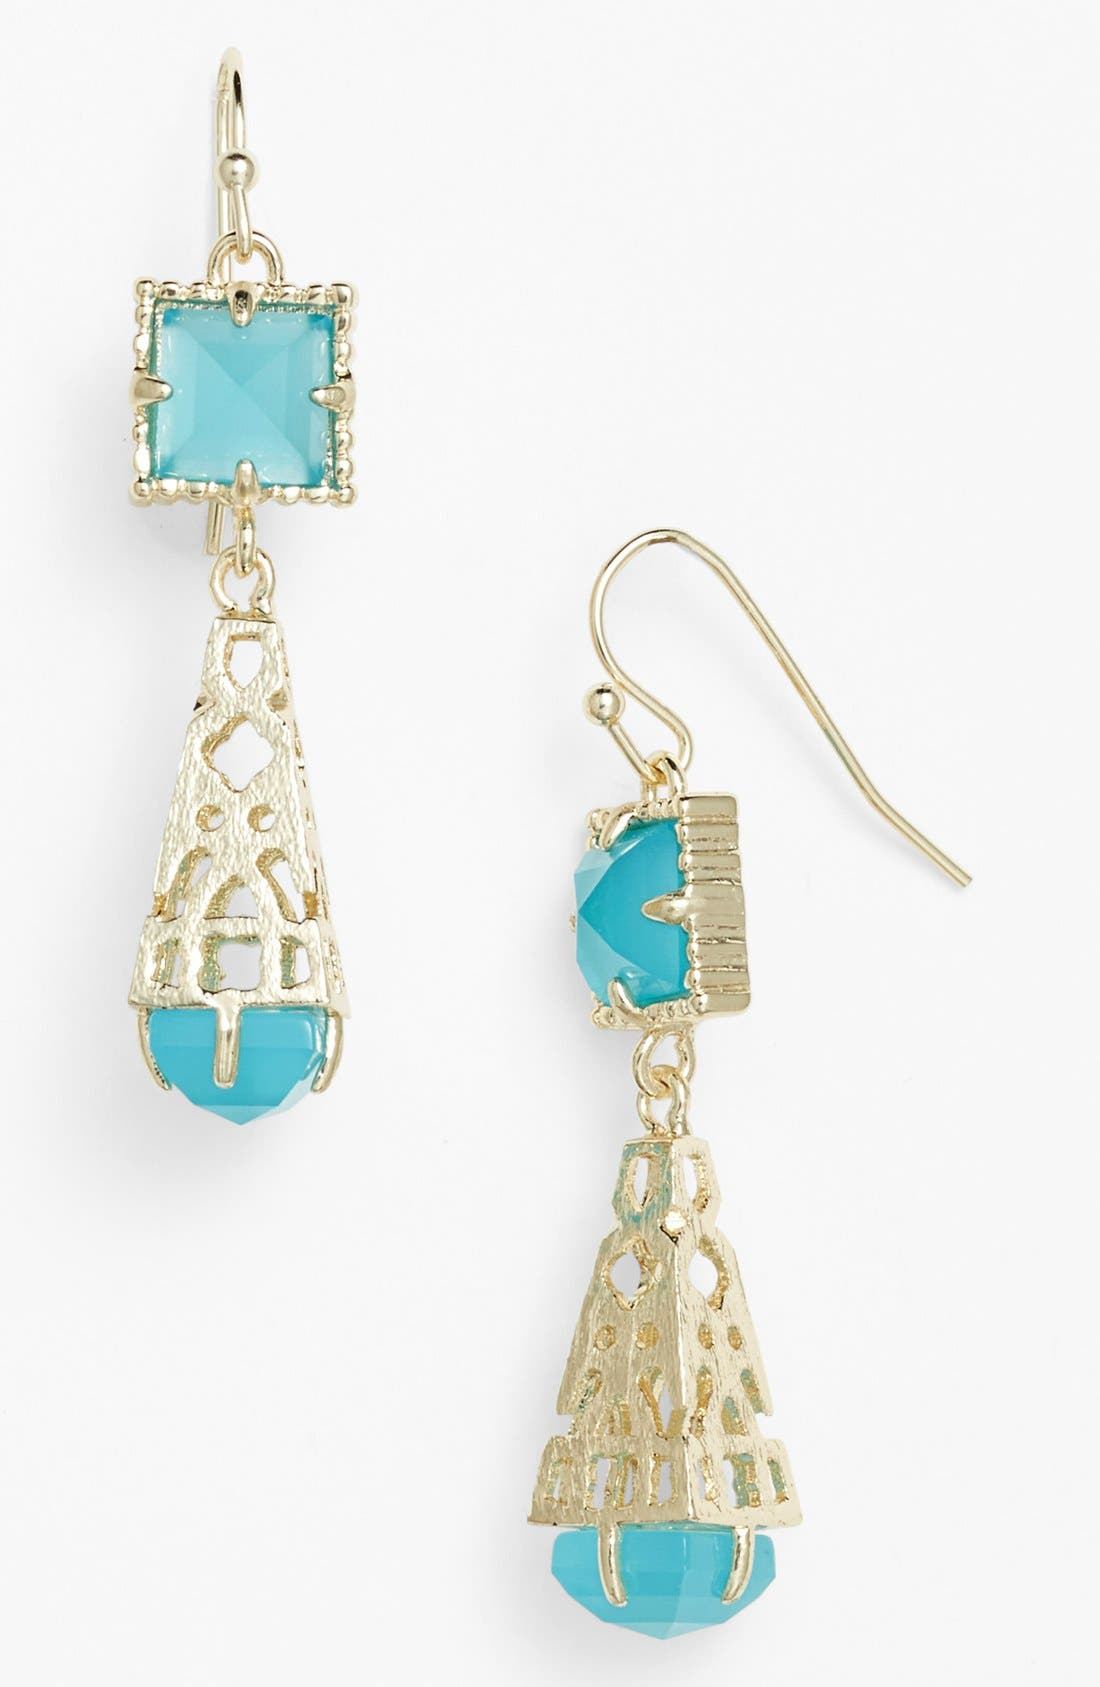 Main Image - Kendra Scott 'Leslie' Teardrop Earrings